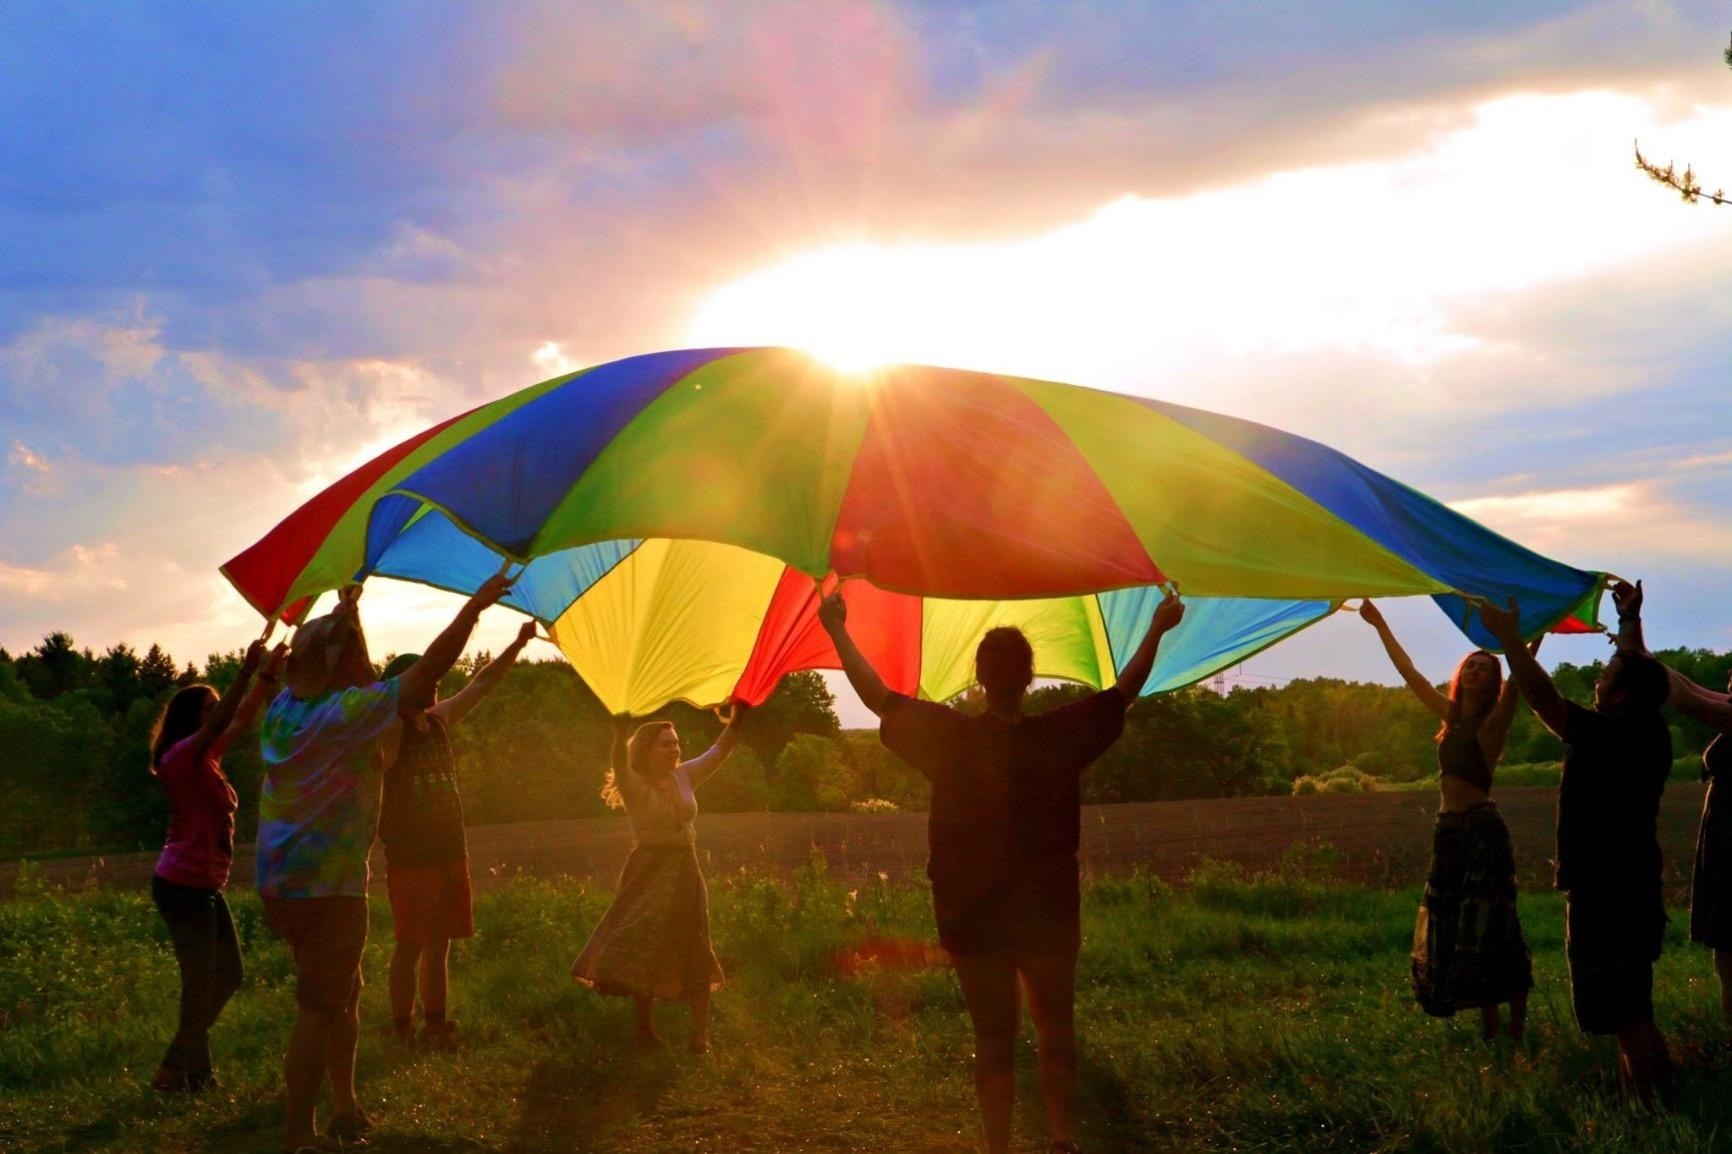 review photo of adults throwing parachute in the air by handles, making it puff up